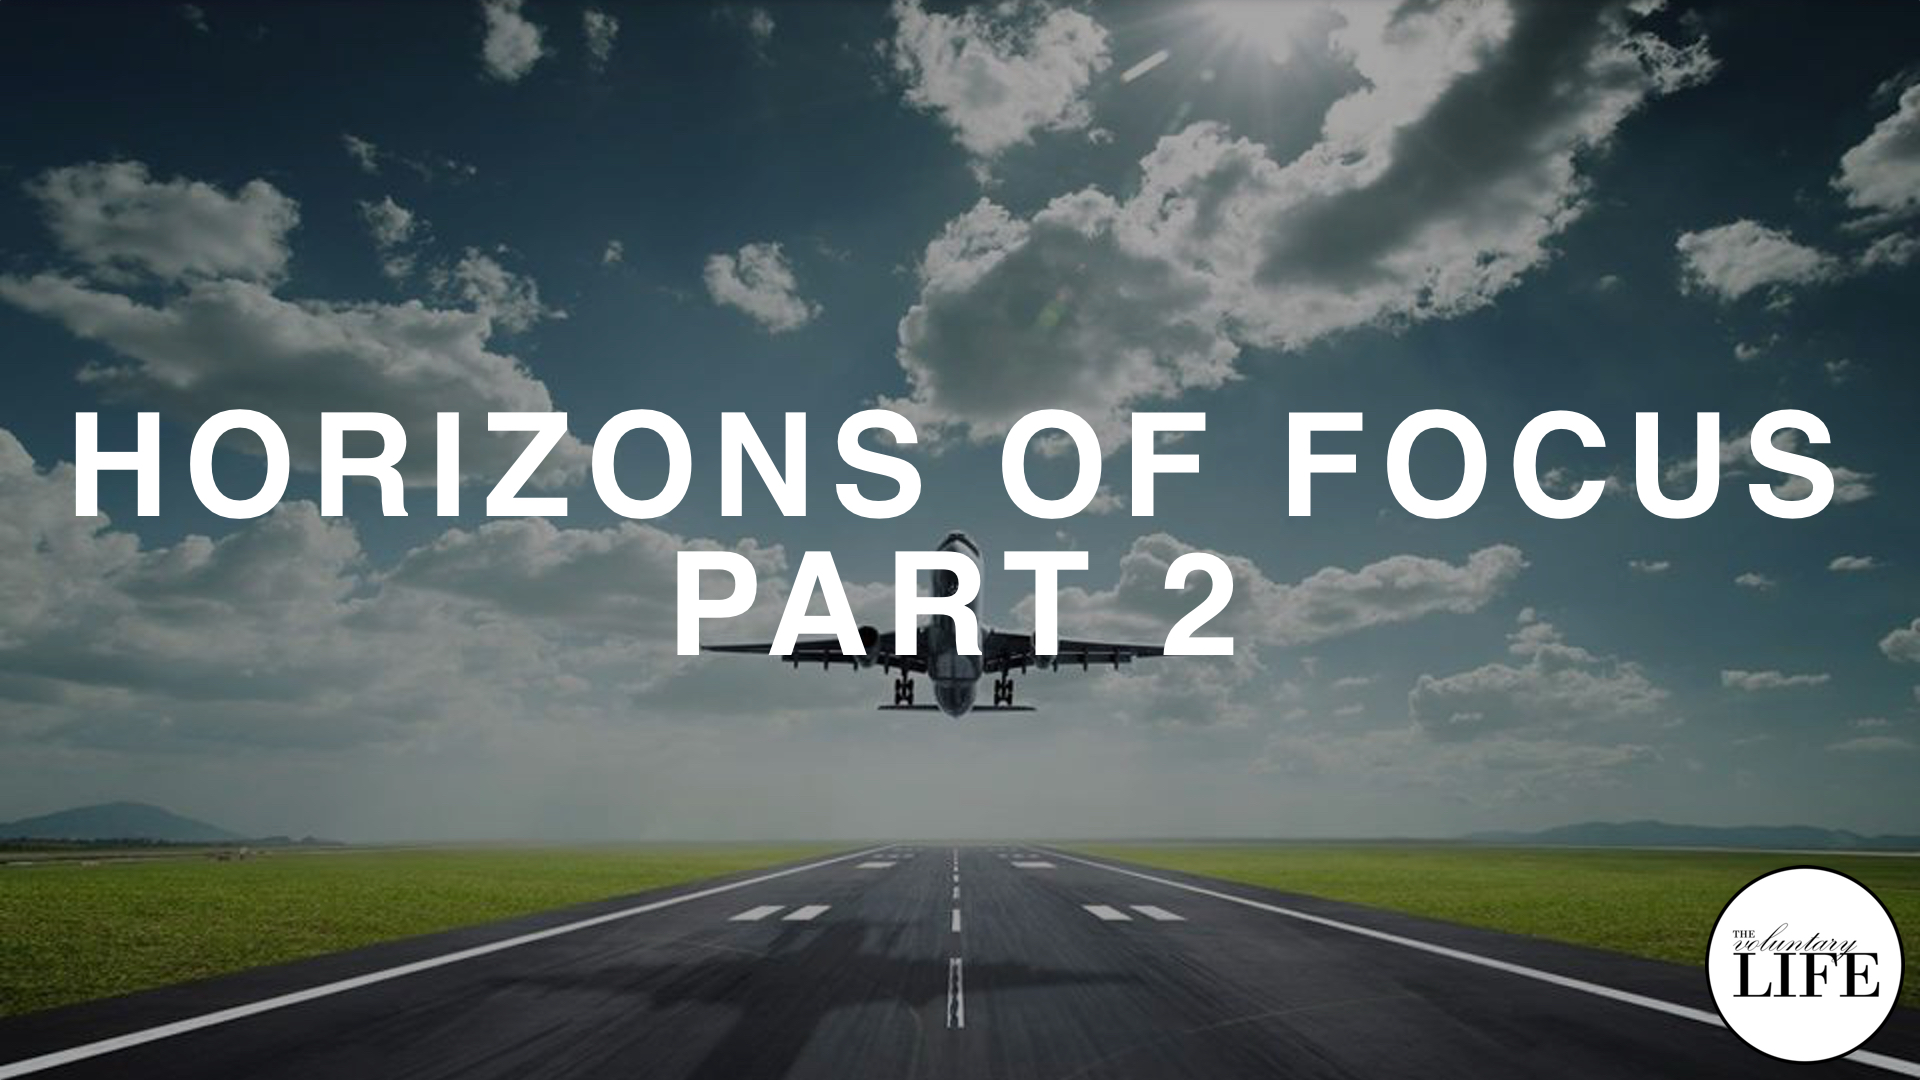 233 The Next Level — Horizons of Focus Part 2